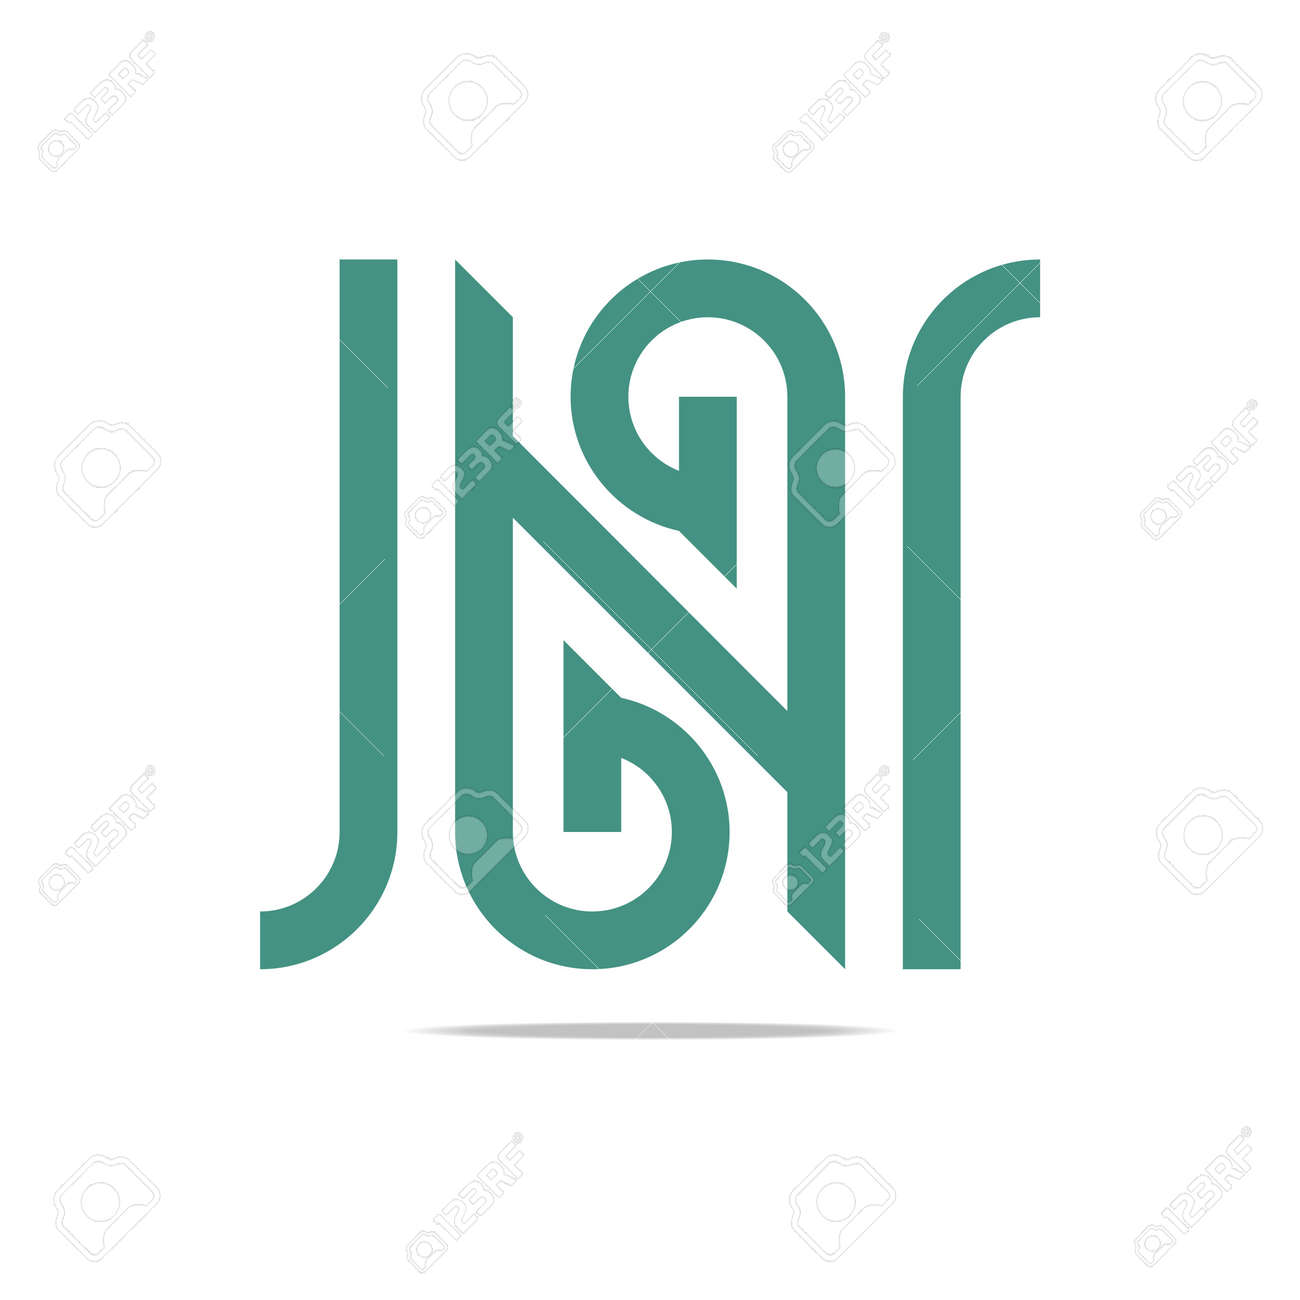 Element symbol n gallery meaning of text symbols logo abstract letter g green combination n design element symbol urtaz Image collections